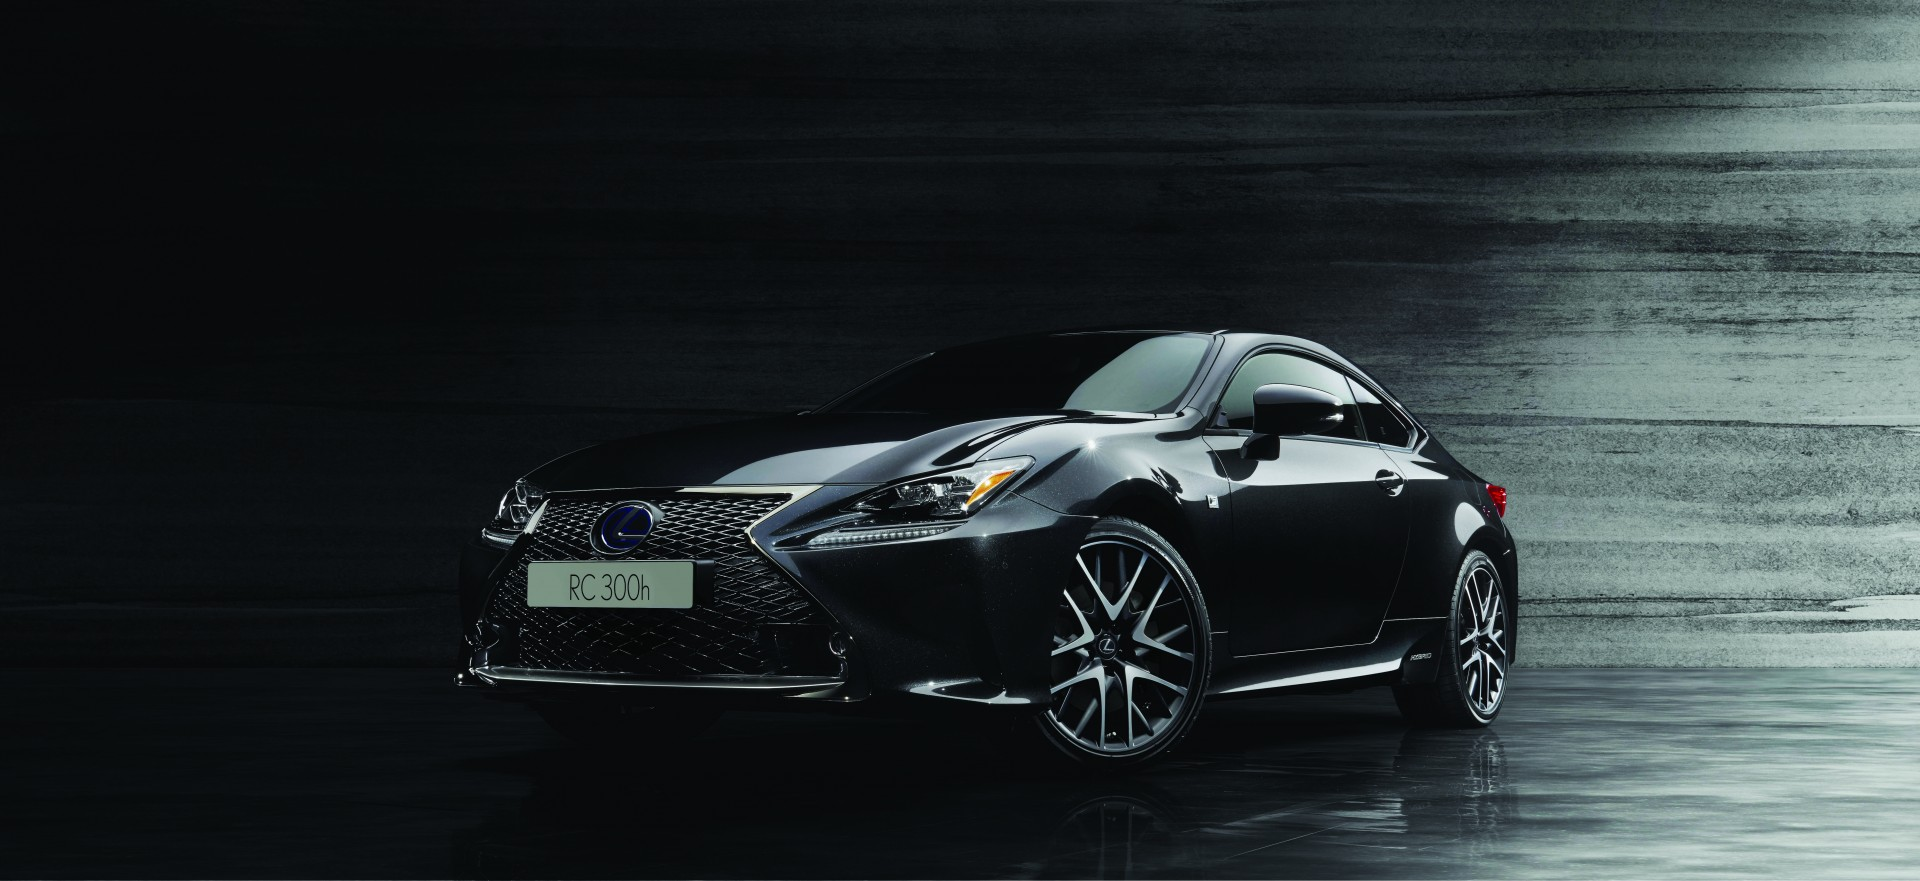 2018 Lexus RC 300h F SPORT Black Edition